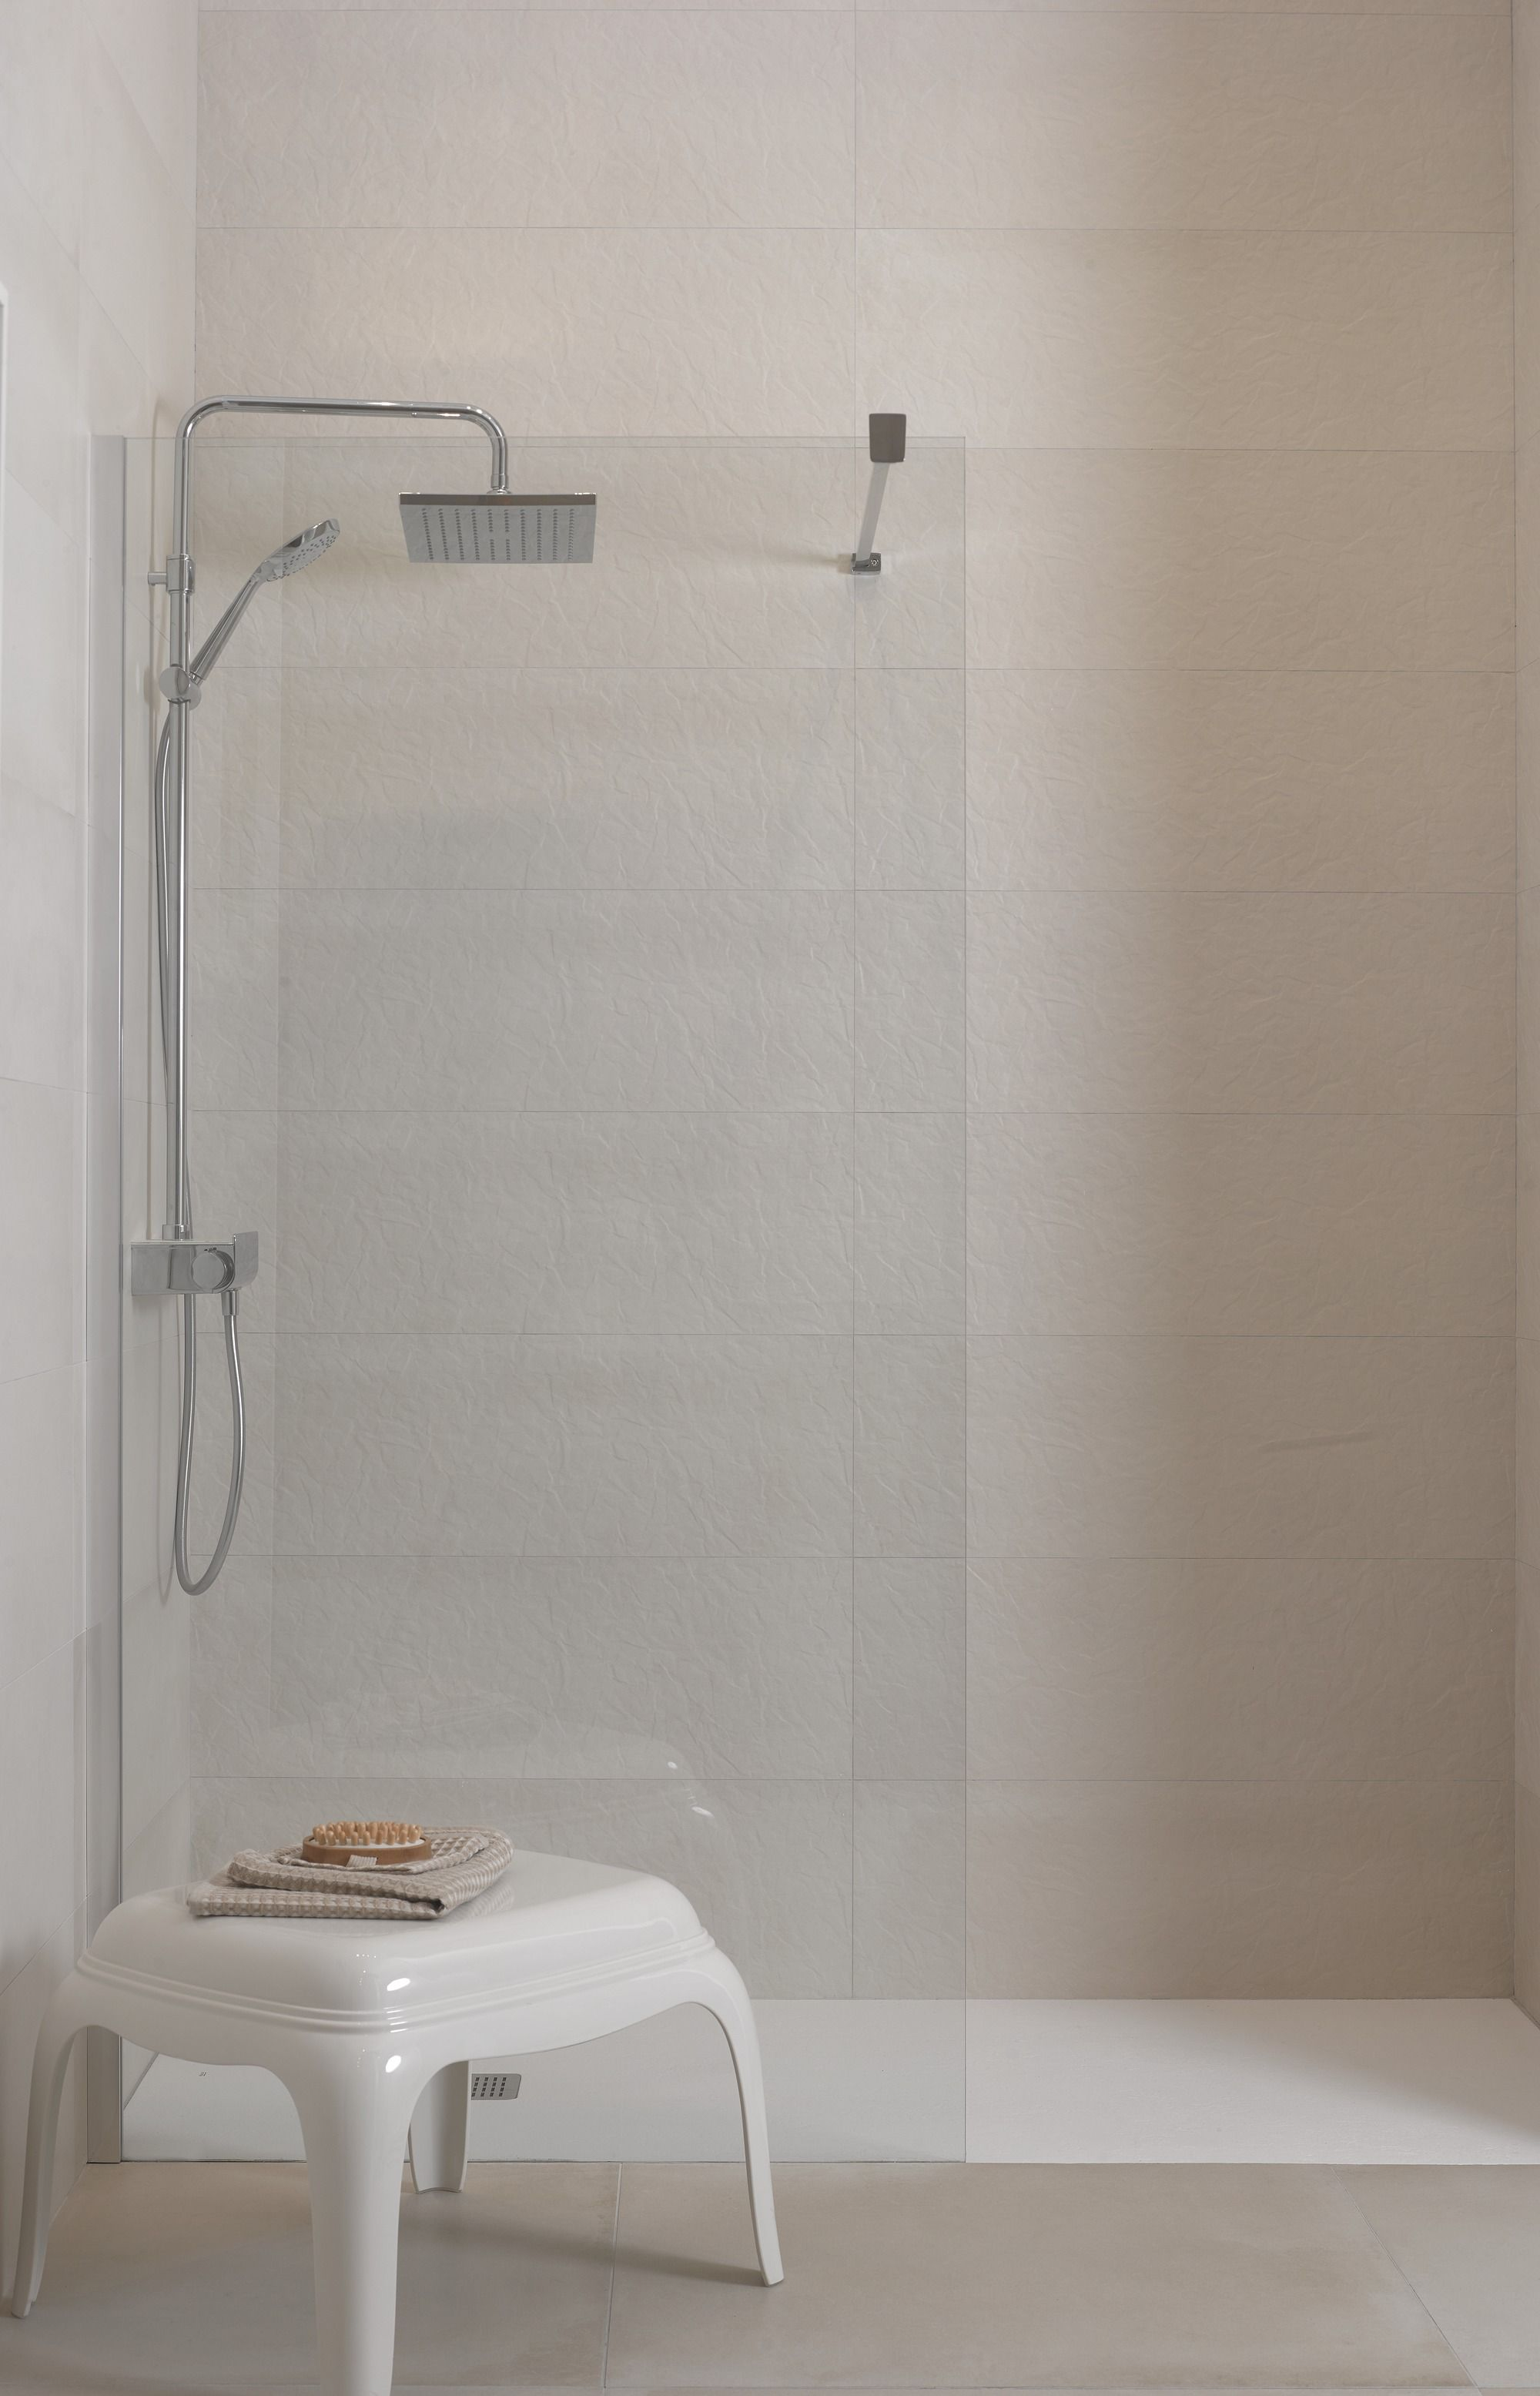 Chelsea suite excell arena ceramic tiles by roca http ceramic tiles by roca doublecrazyfo Gallery